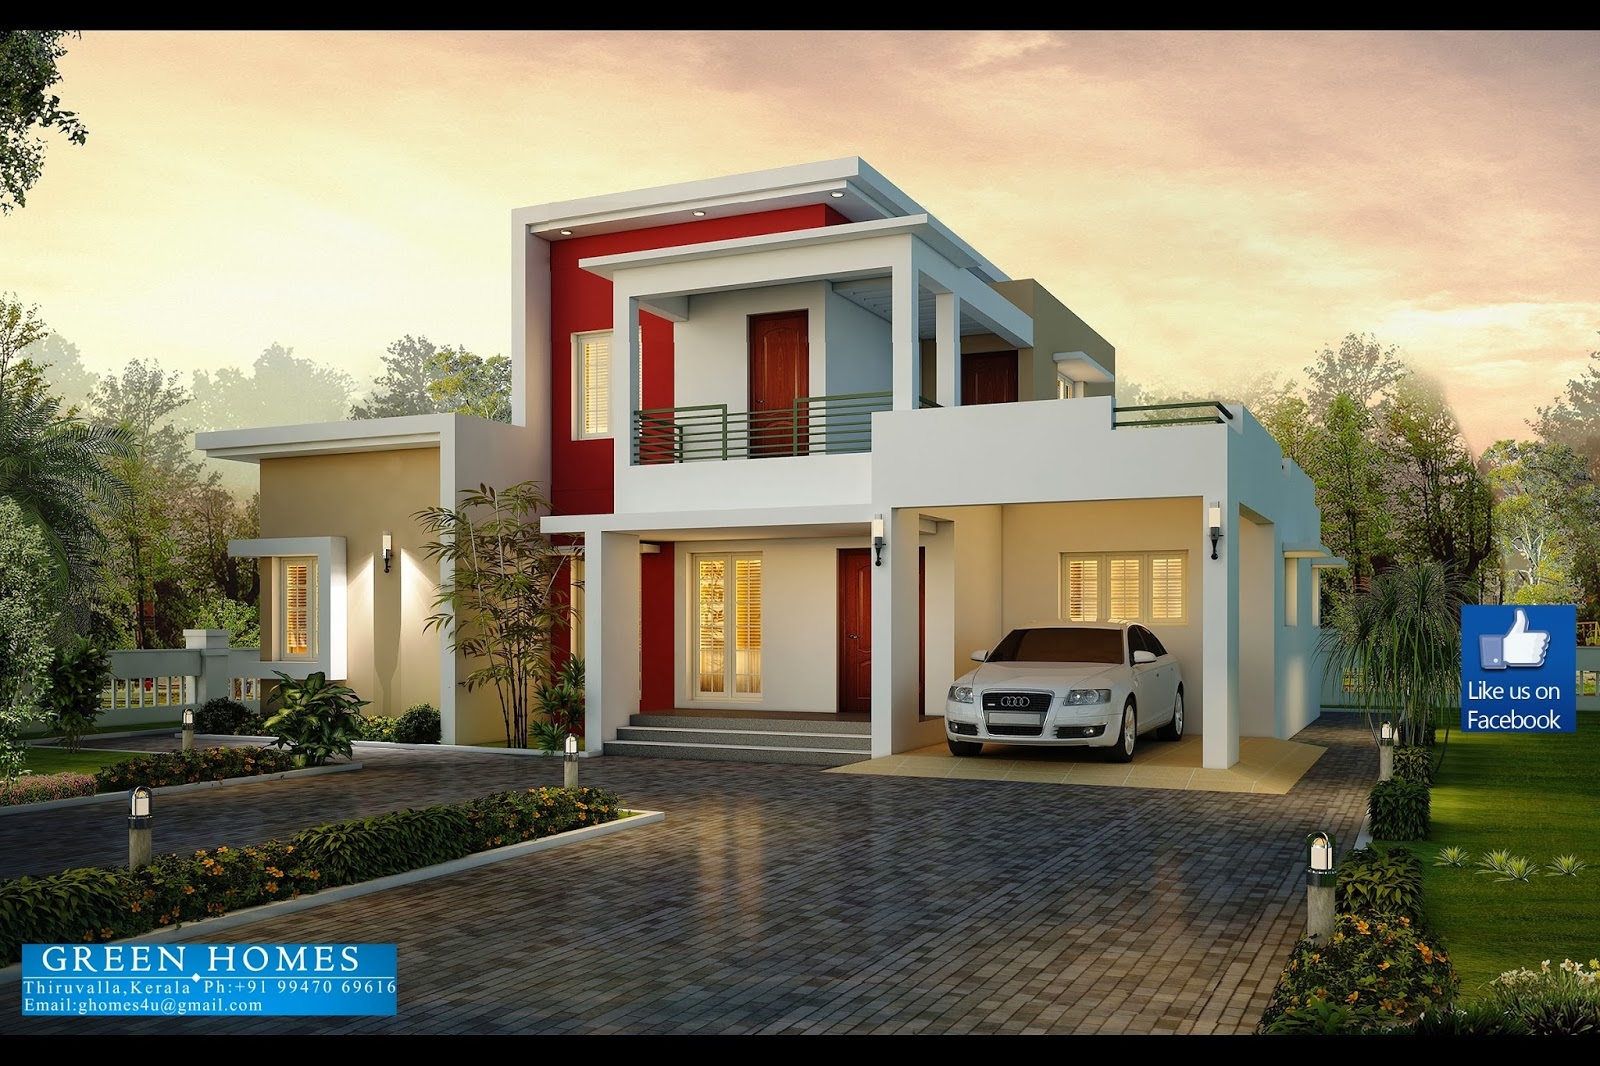 Green homes awesome 3 bedroom modern house design for Green modern home designs